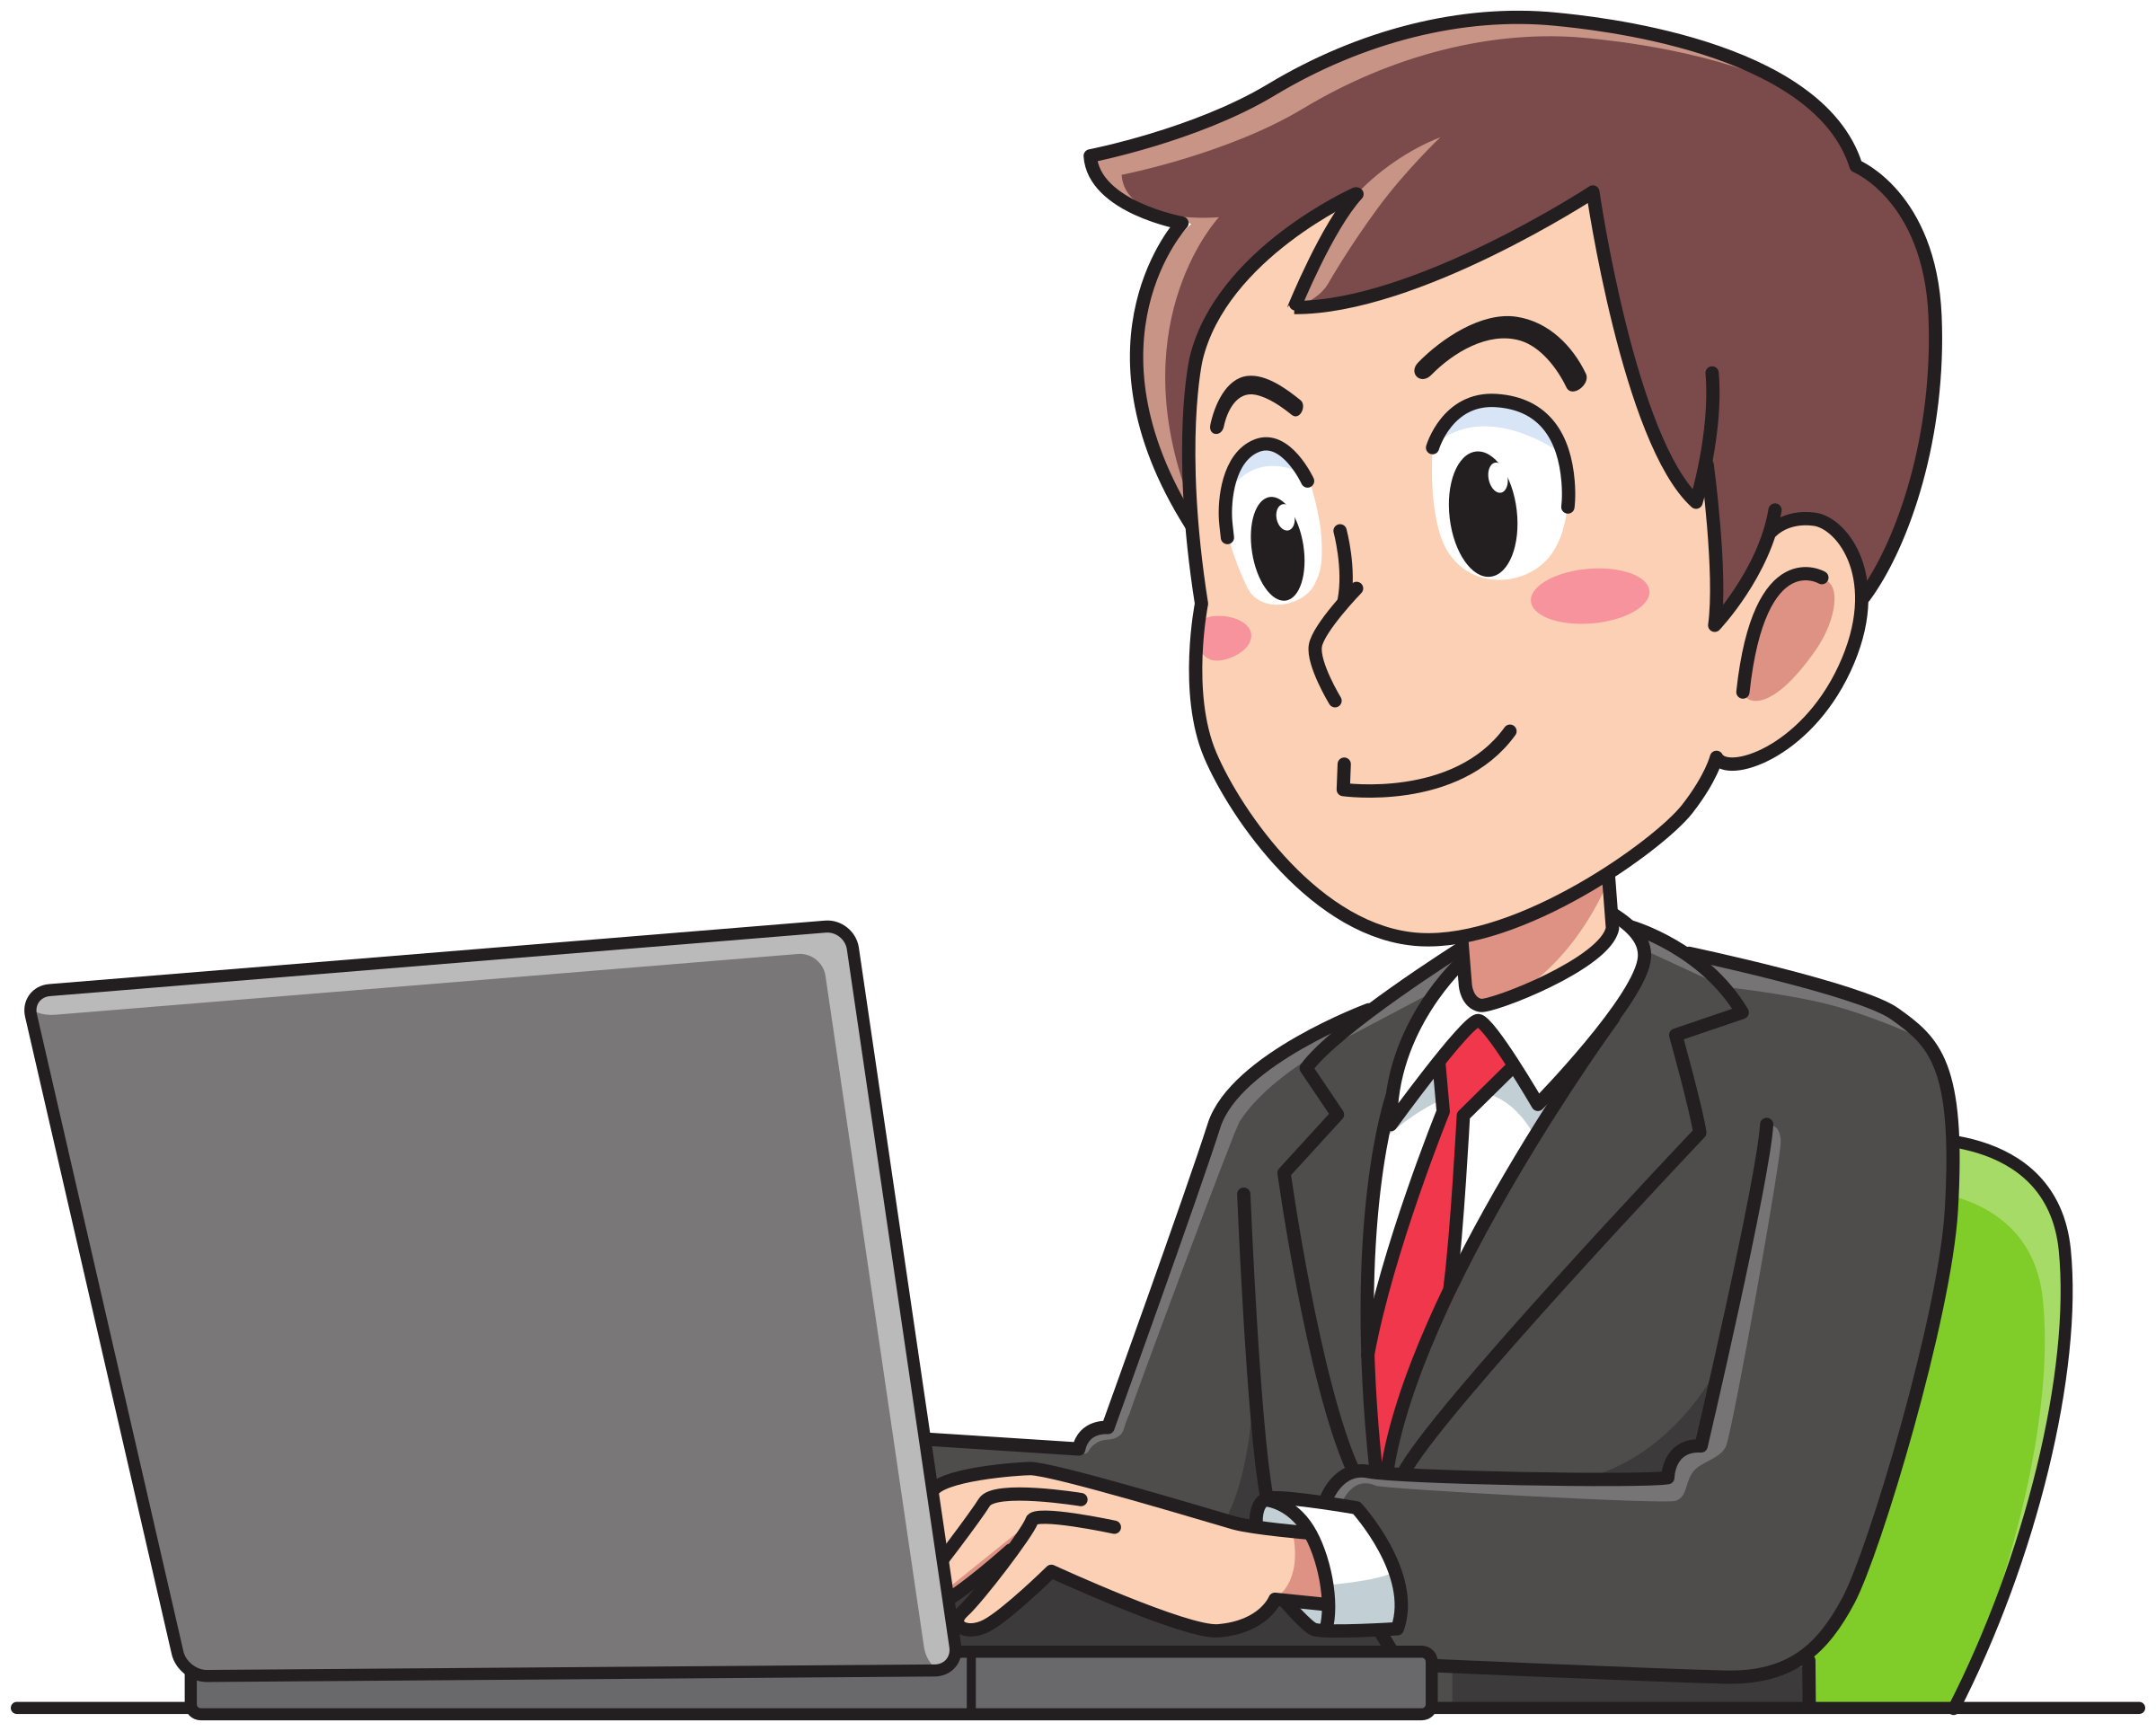 png download Business man big image. Free clipart people working.